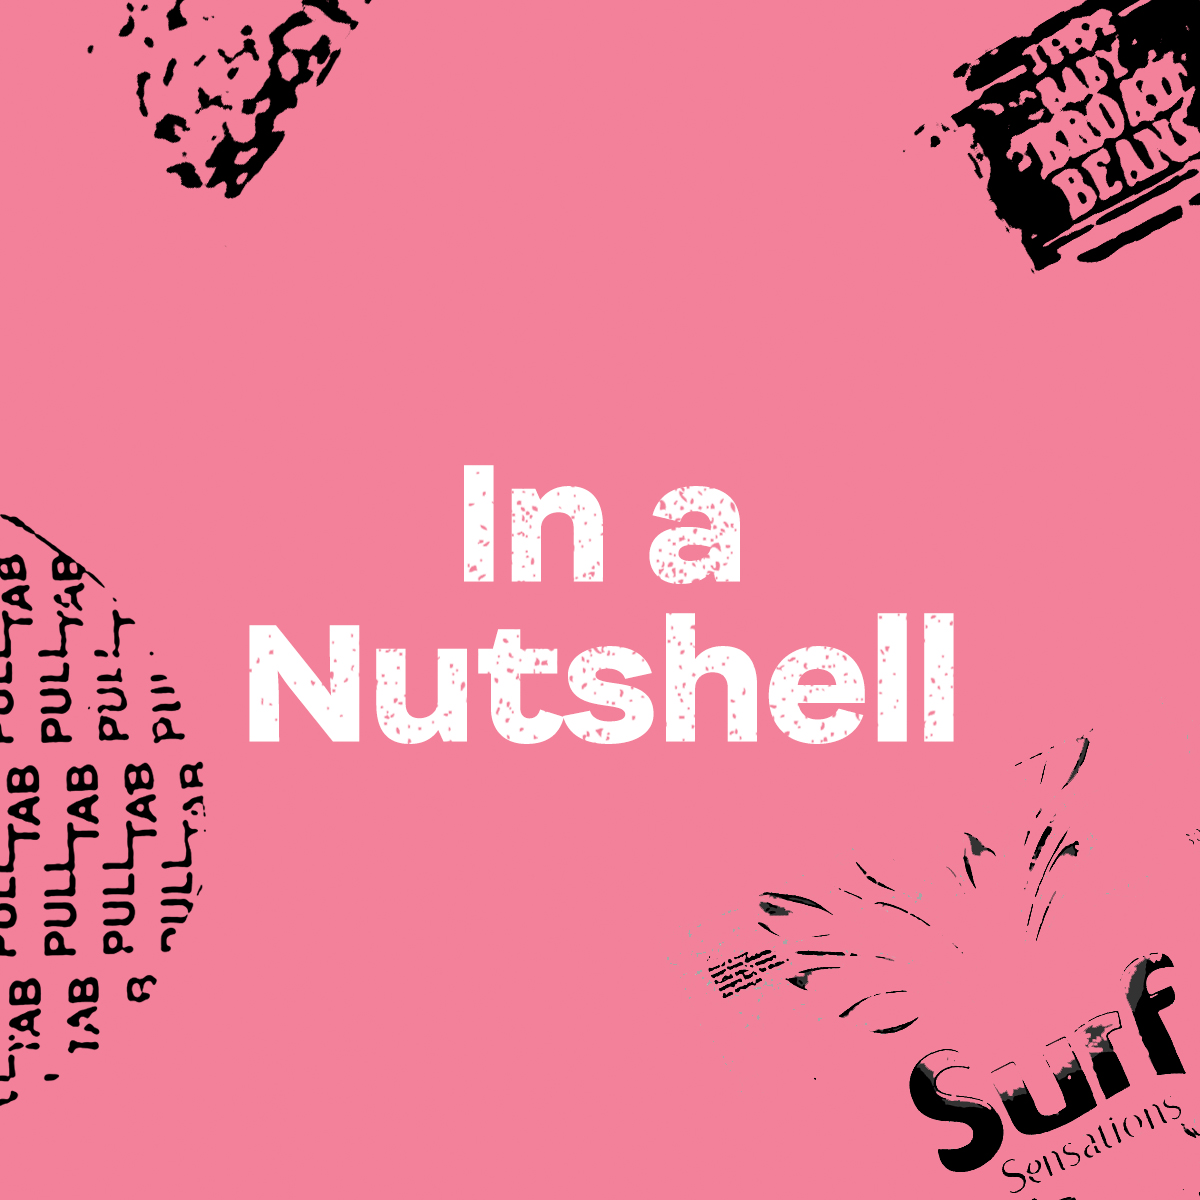 In a Nutshell… - Need fast stats? Looking for a bitesize report? Download In a Nutshell for a whistle-stop tour of the report's key findings, including:- Over the course of one year, Daniel threw away 4,490 pieces of plastic- The UK throws away over 295 billion pieces of plastic every year- 93% of his collected plastic waste was single-use packaging- 67% of Webb's throwaway plastic was used to package, wrap and consume food- 70% of the plastic that Daniel threw away in a year is not currently recyclable- Only 4% of Webb's collection of plastic waste would be recycled at UK recycling facilities